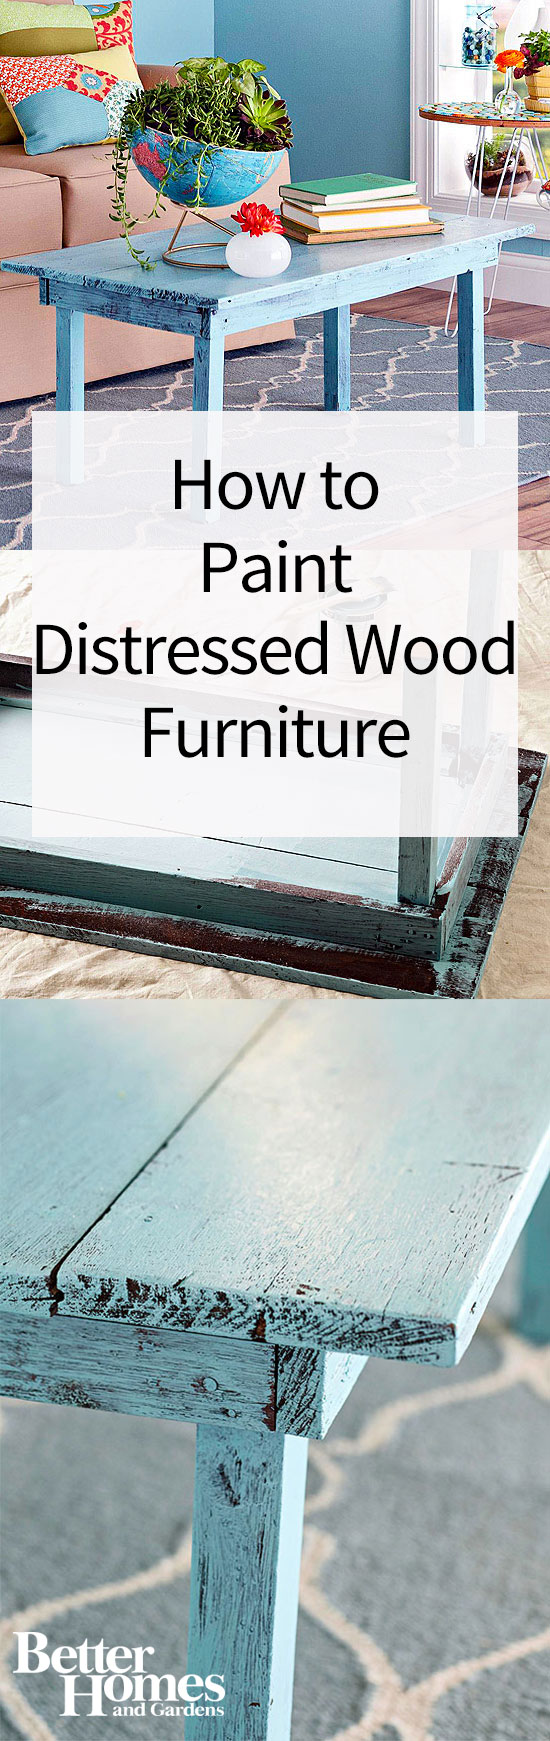 Editorsu0027 Top Finds. How To Paint Distressed Wood Furniture